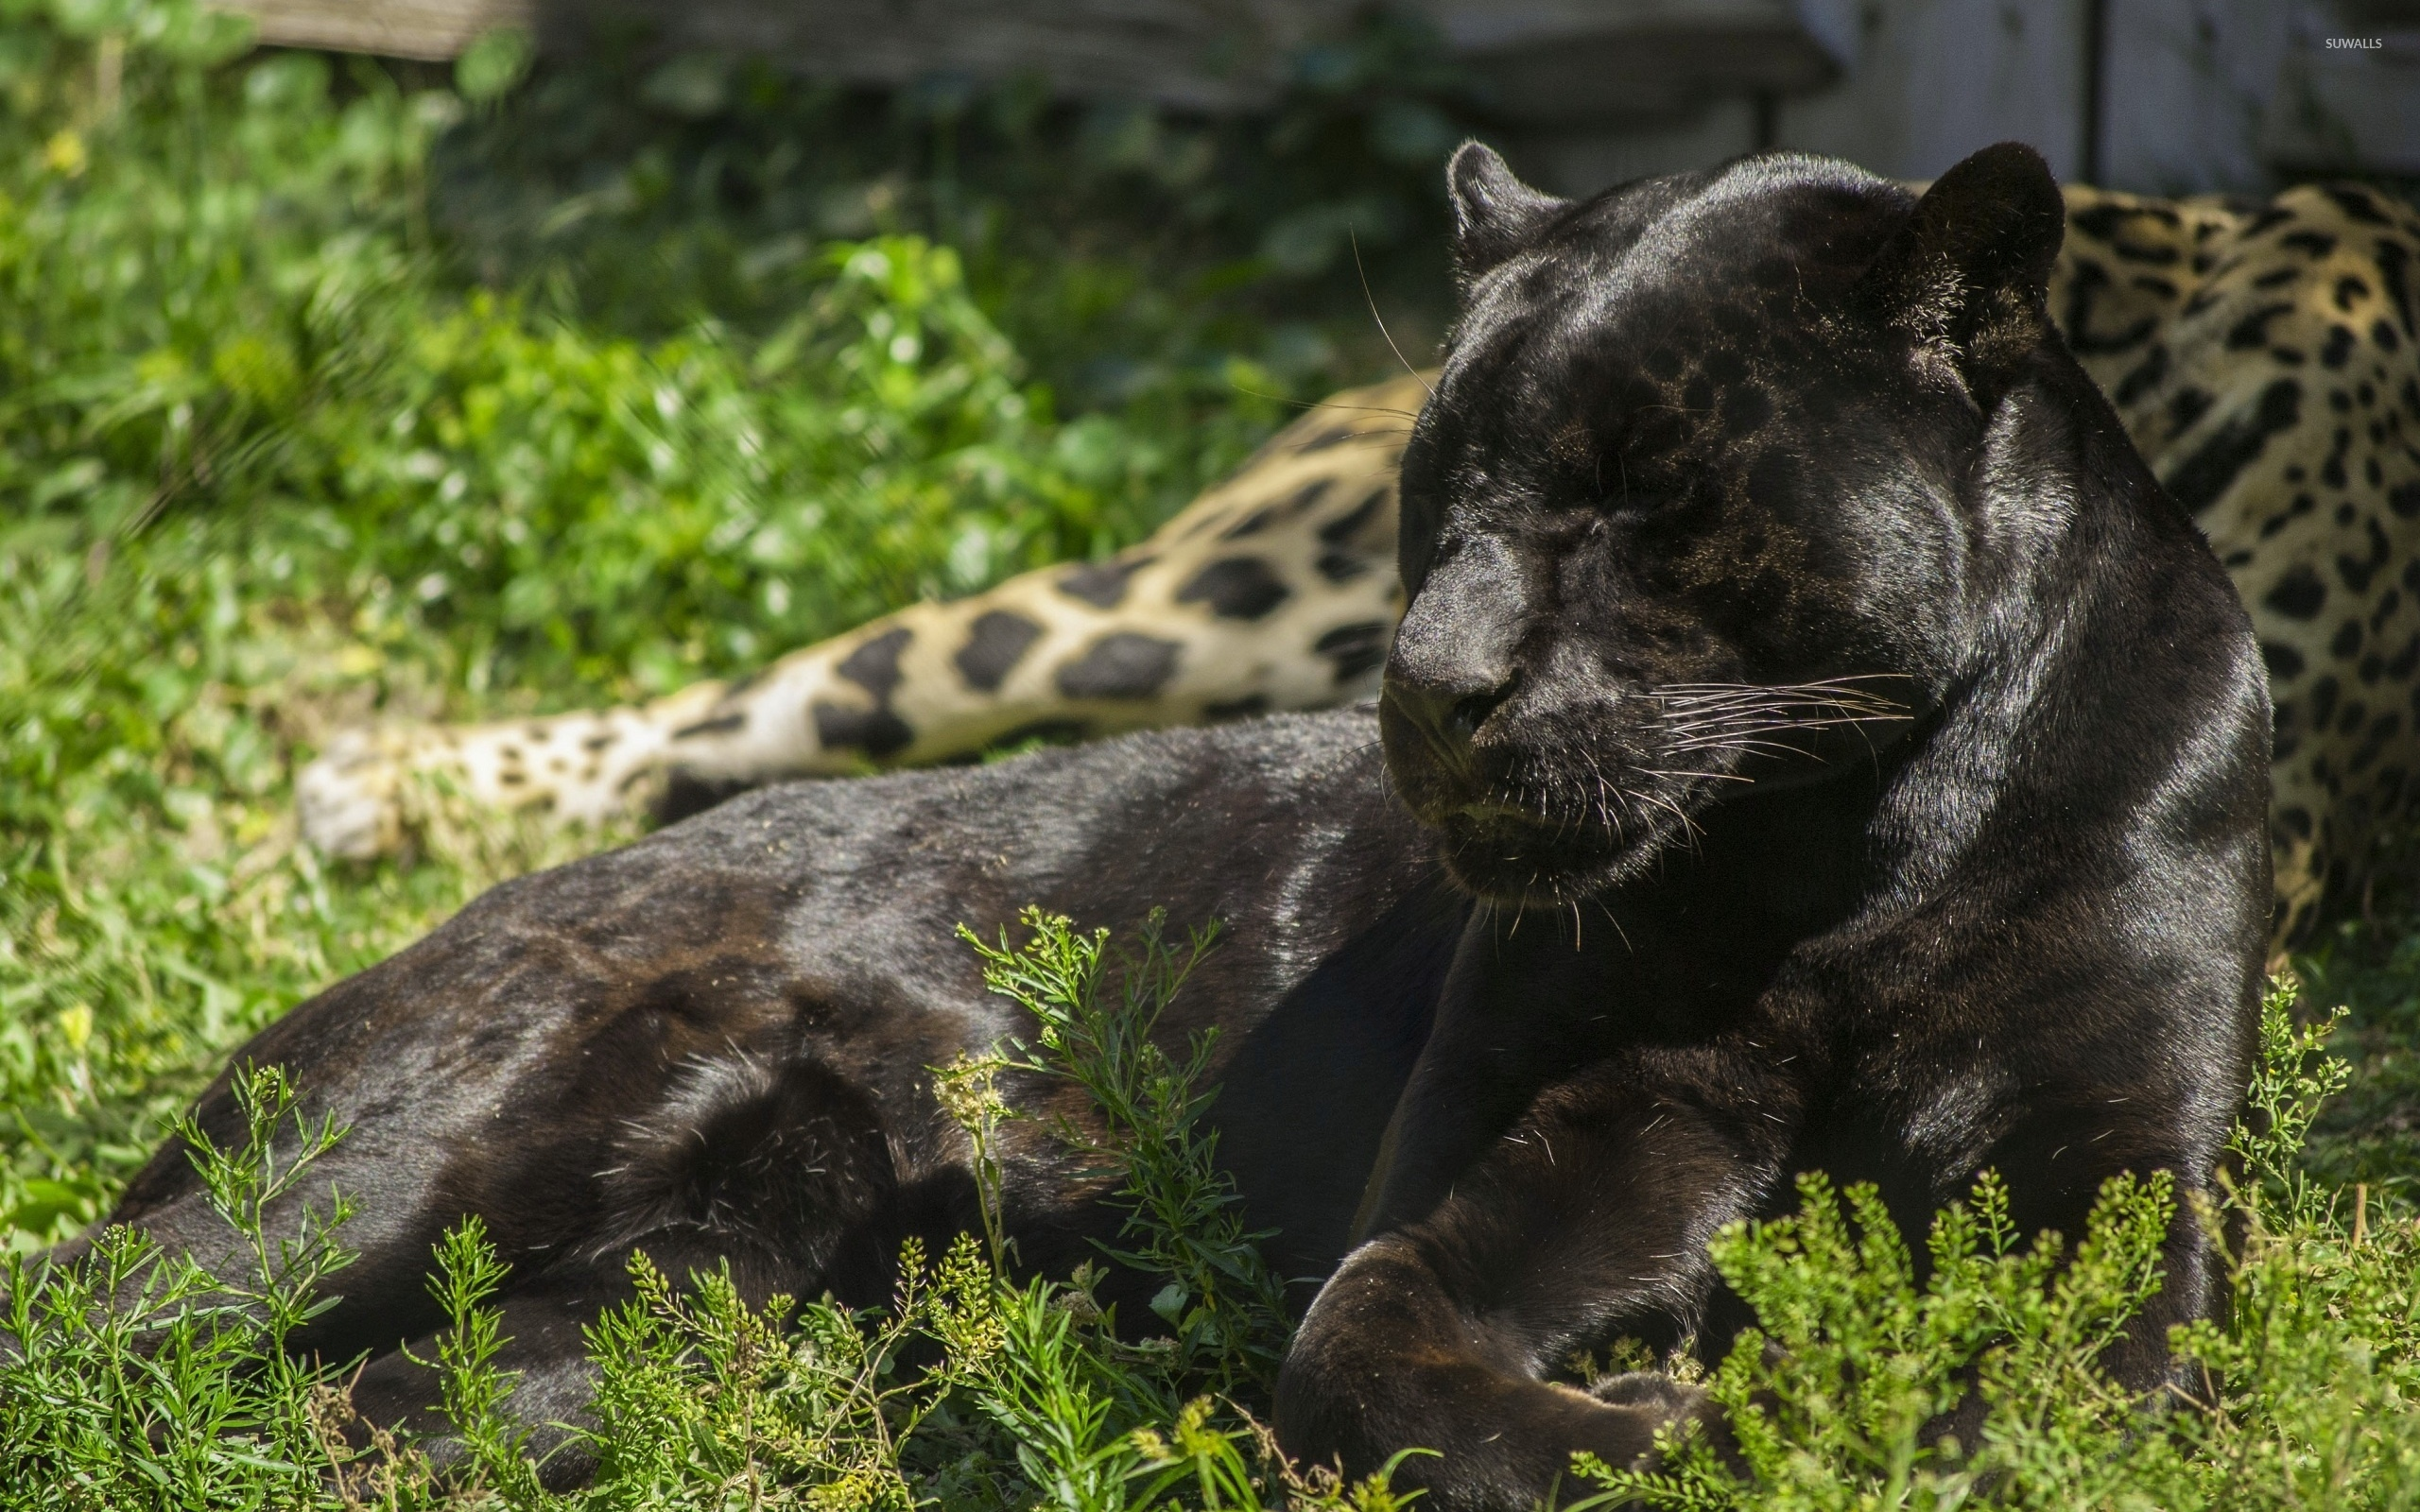 Black Panther Sleeping In The Grass Wallpaper Animal Wallpapers 47845